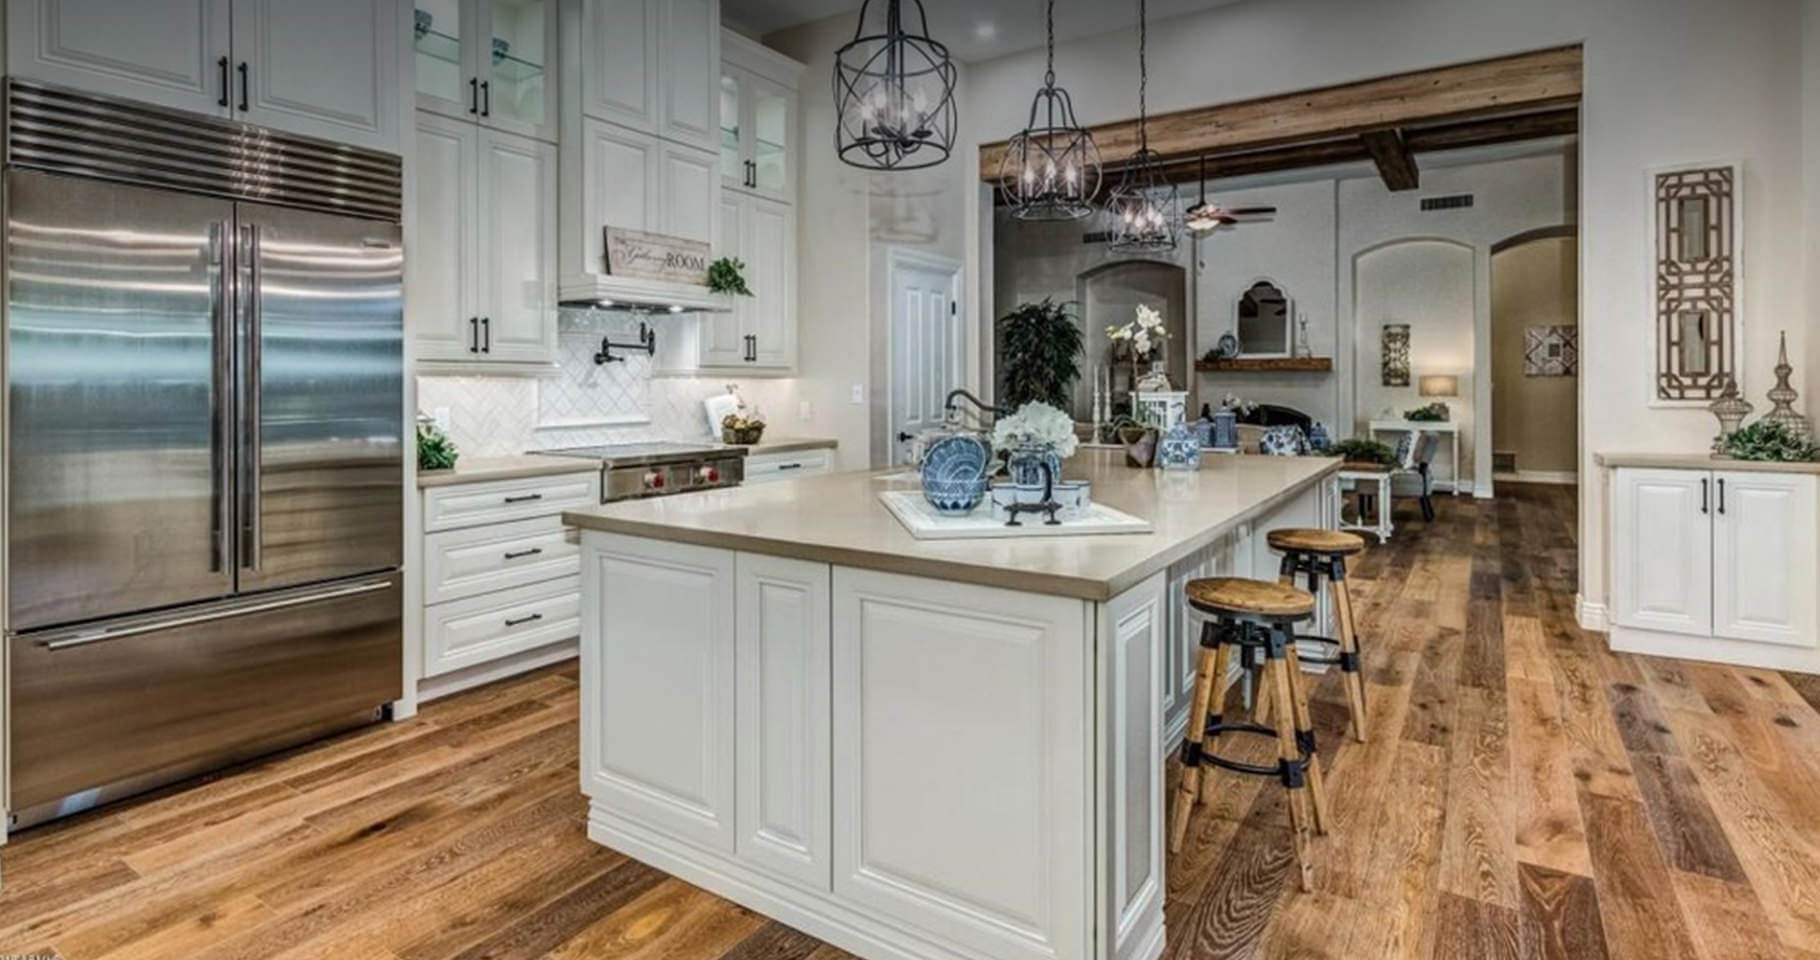 Kitchen Cabinets 85260 Scottsdale Kitchen And Bath Cabinets And Countertops In